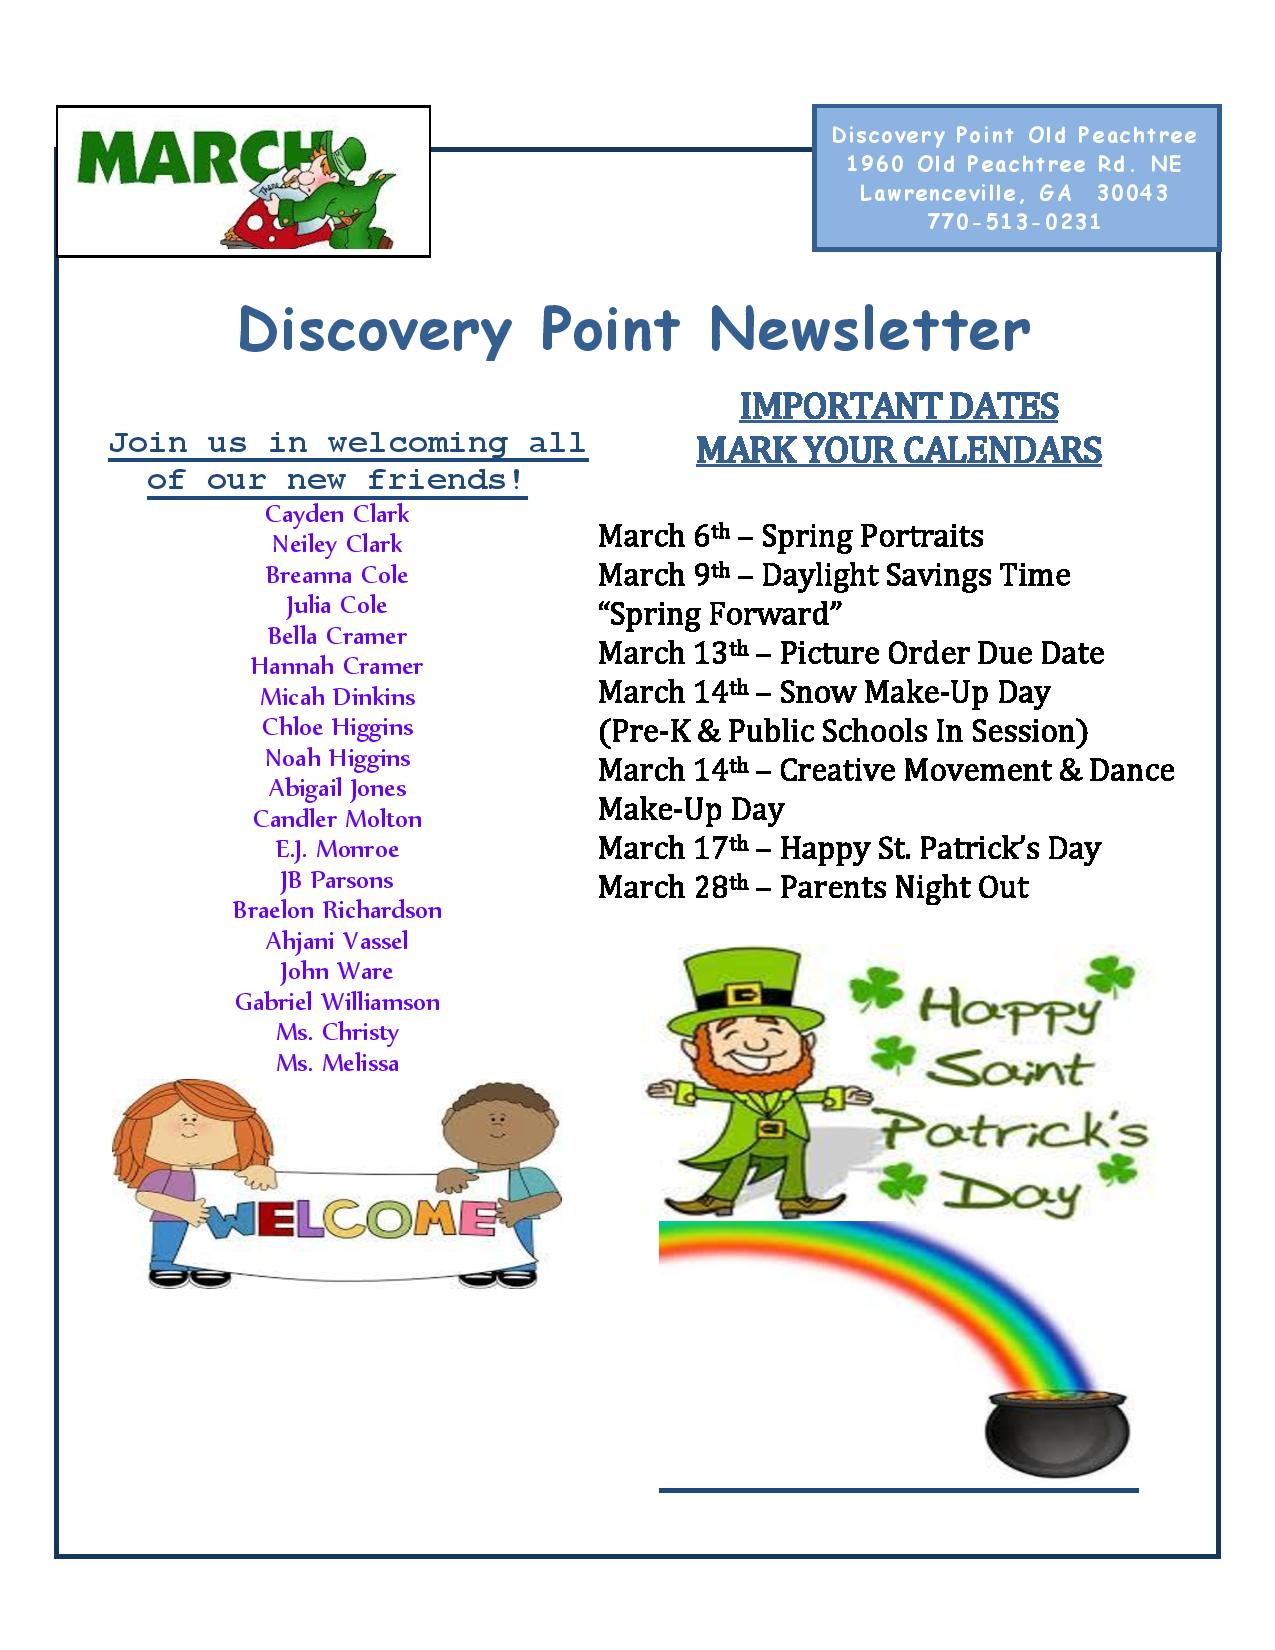 Discovery Point Old Peachtree March Newsletter Page 1